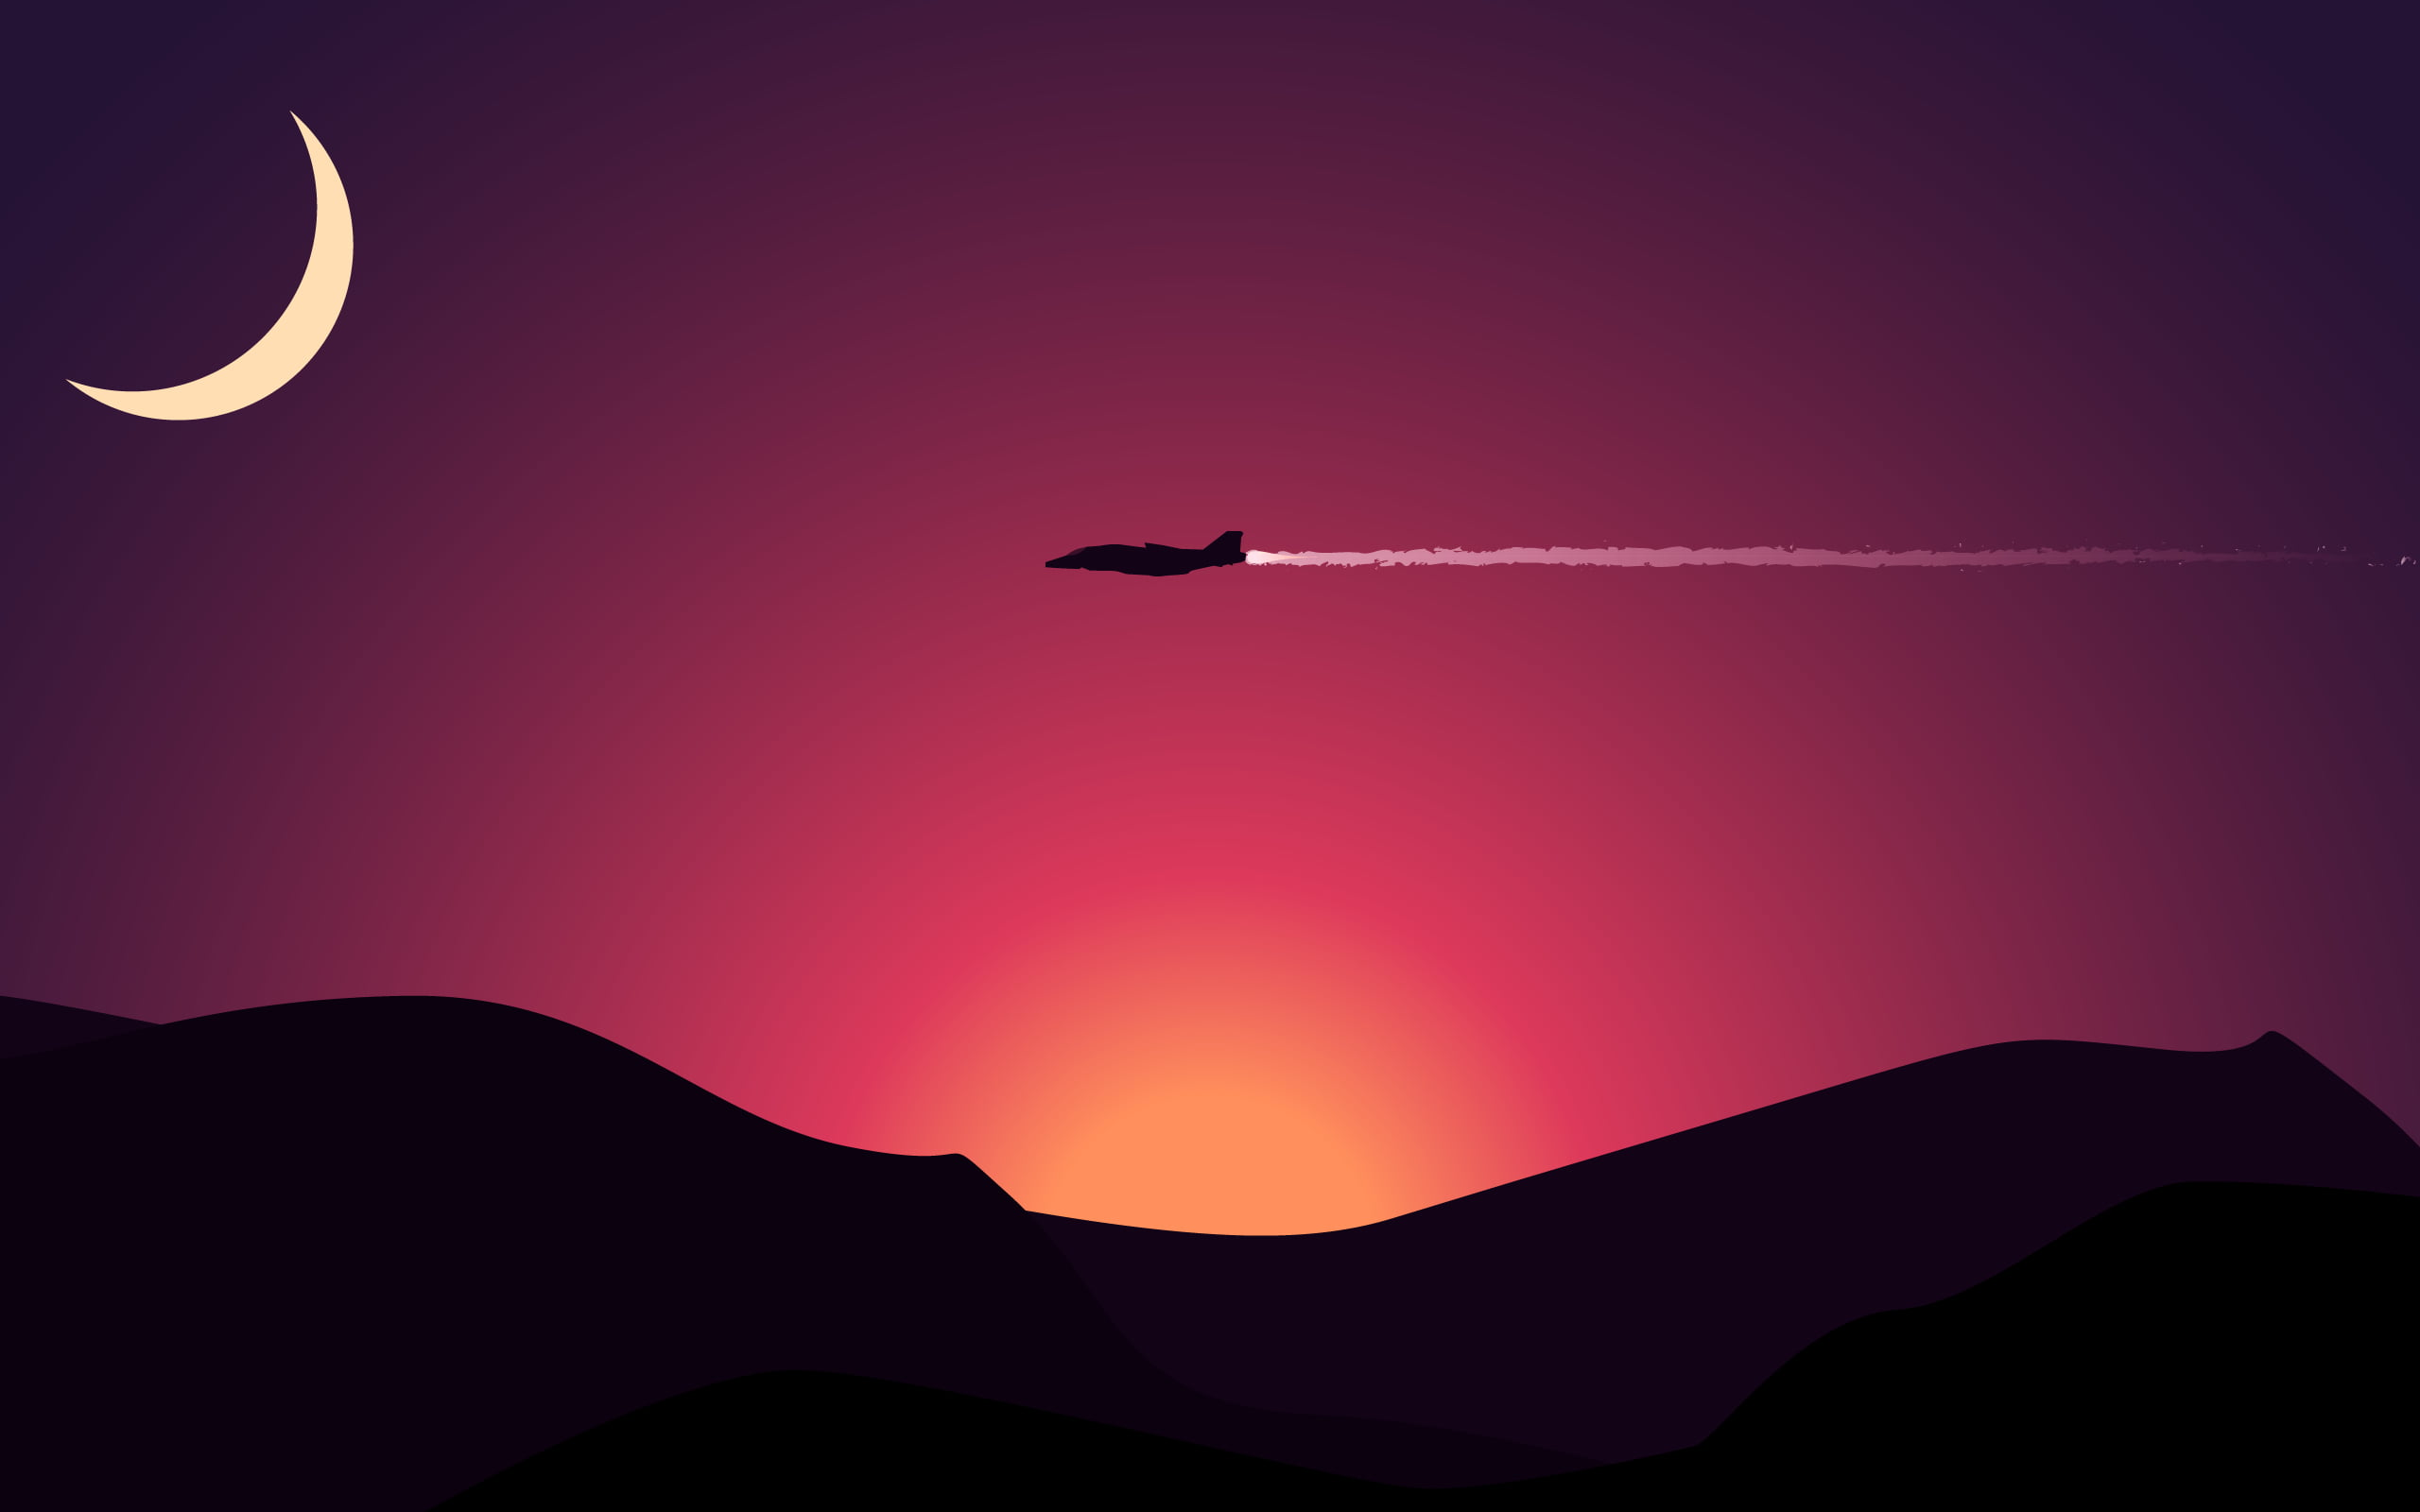 Iphone 2g Wallpaper For Iphone X Airplane Above Mountains With Sunset Under Crescent Moon